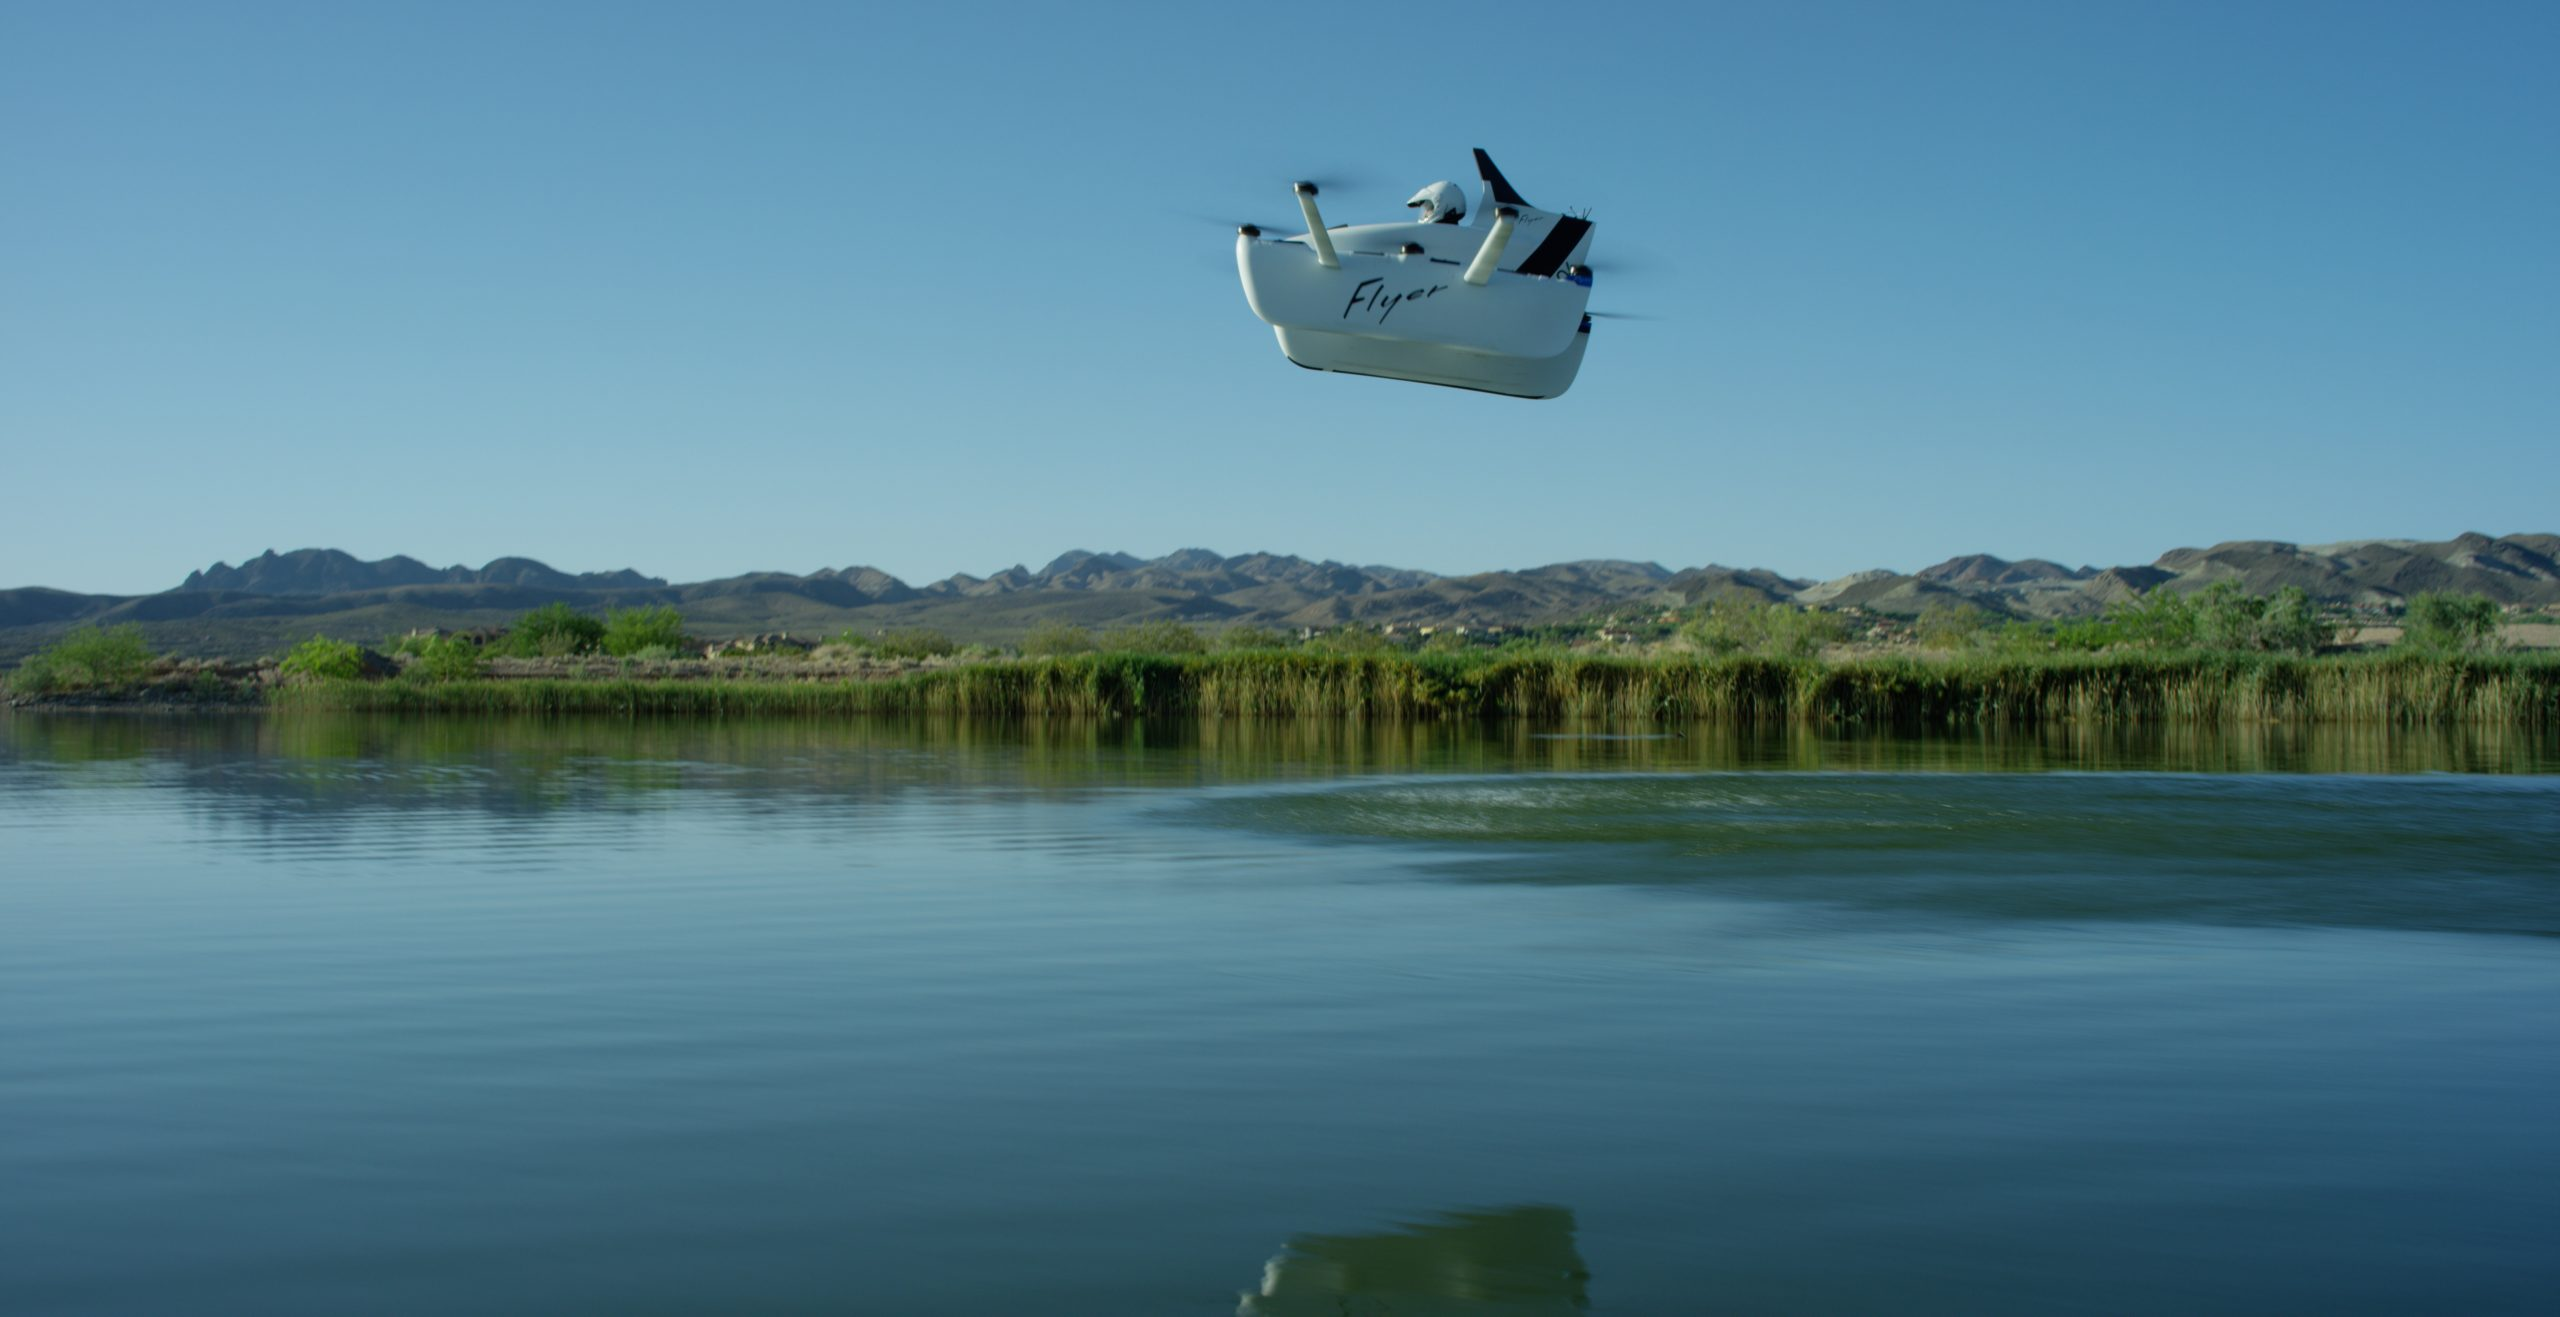 The Flyer – an Ultralight Plane You Can Fly Without a Licence